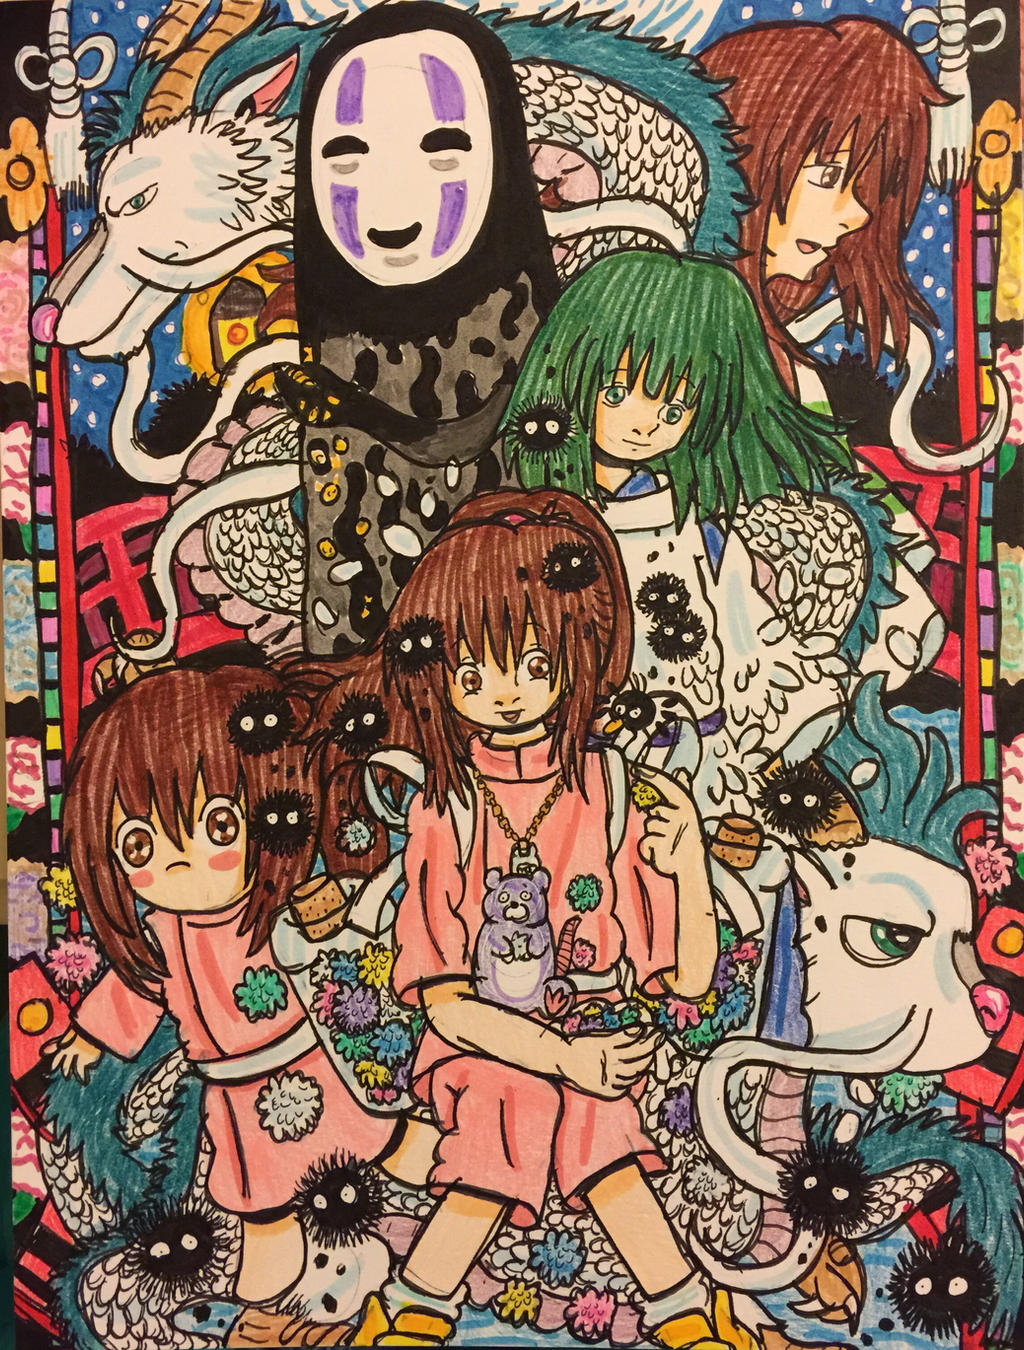 Spirited Away Spiritual River Of The Spirits By Ghiblilover92 On Deviantart